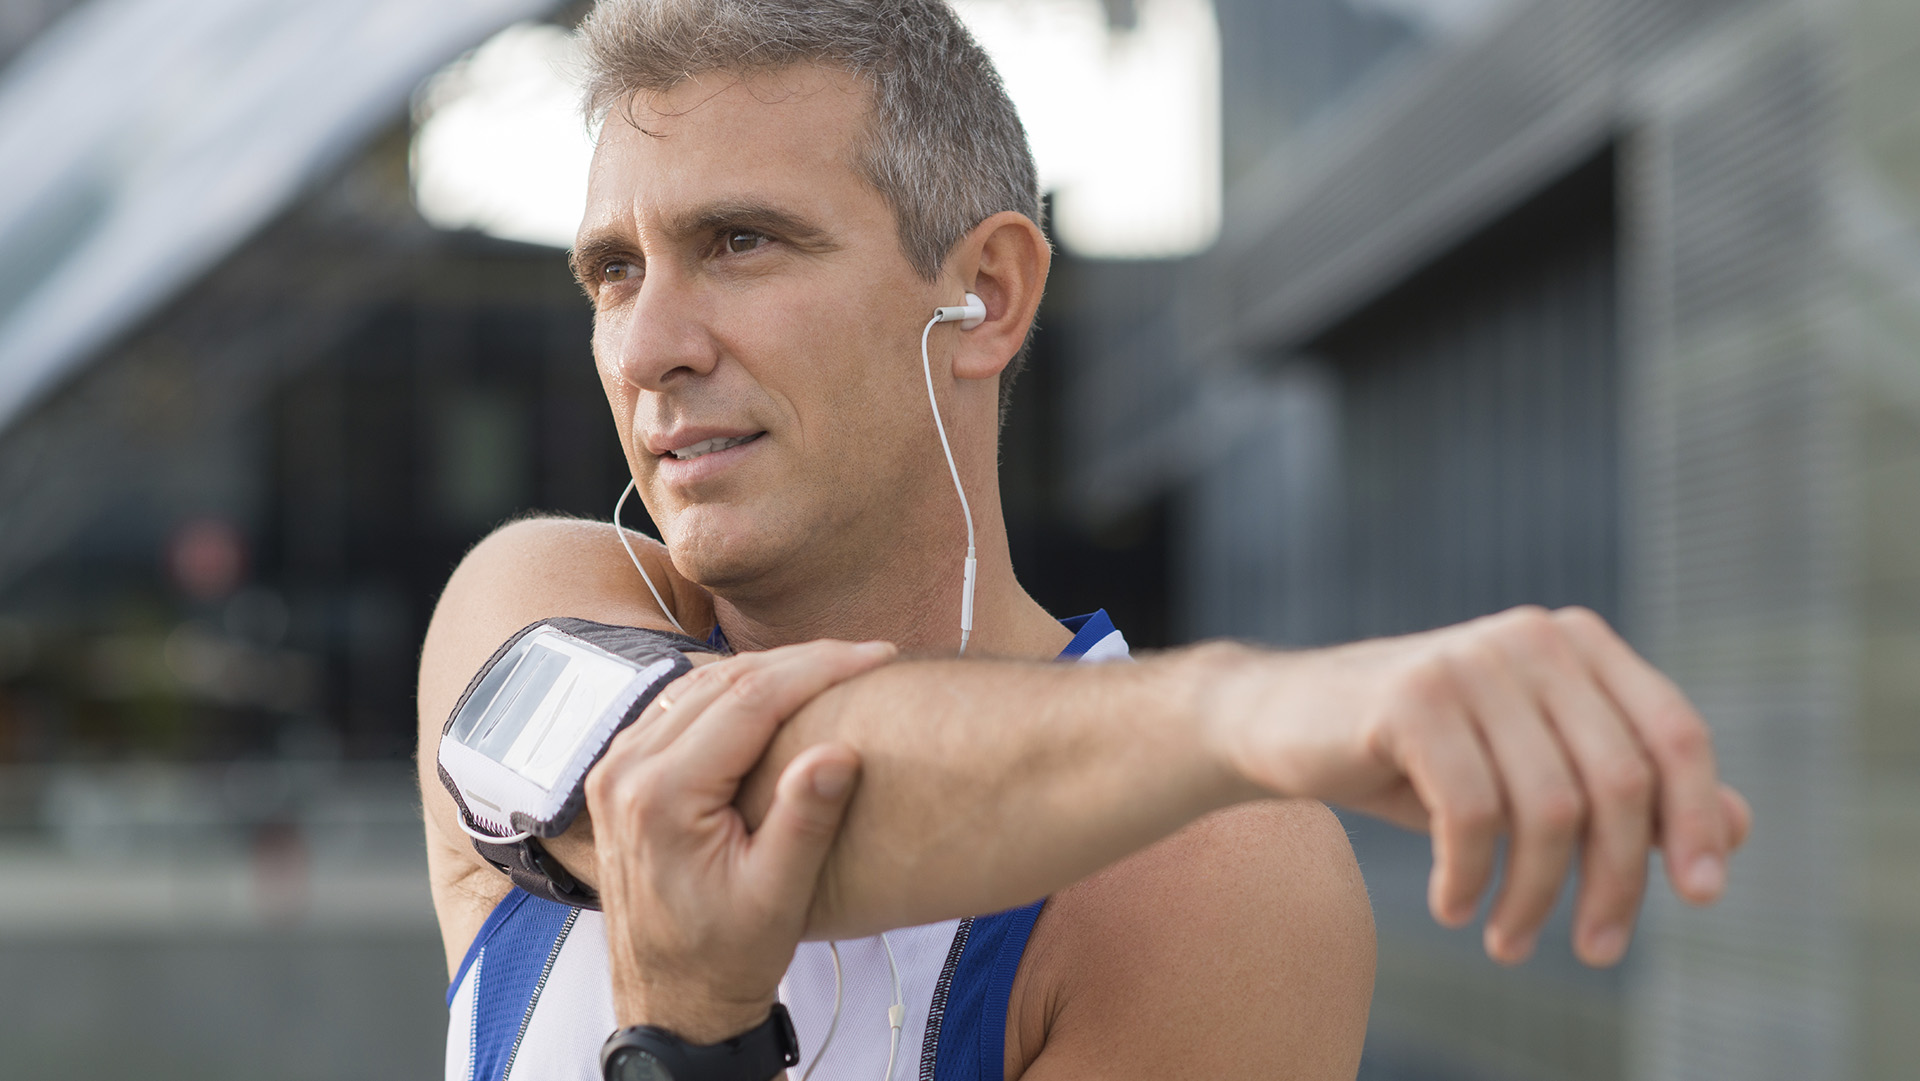 Mature Male Athlete Stretching And Listening To Music Outside